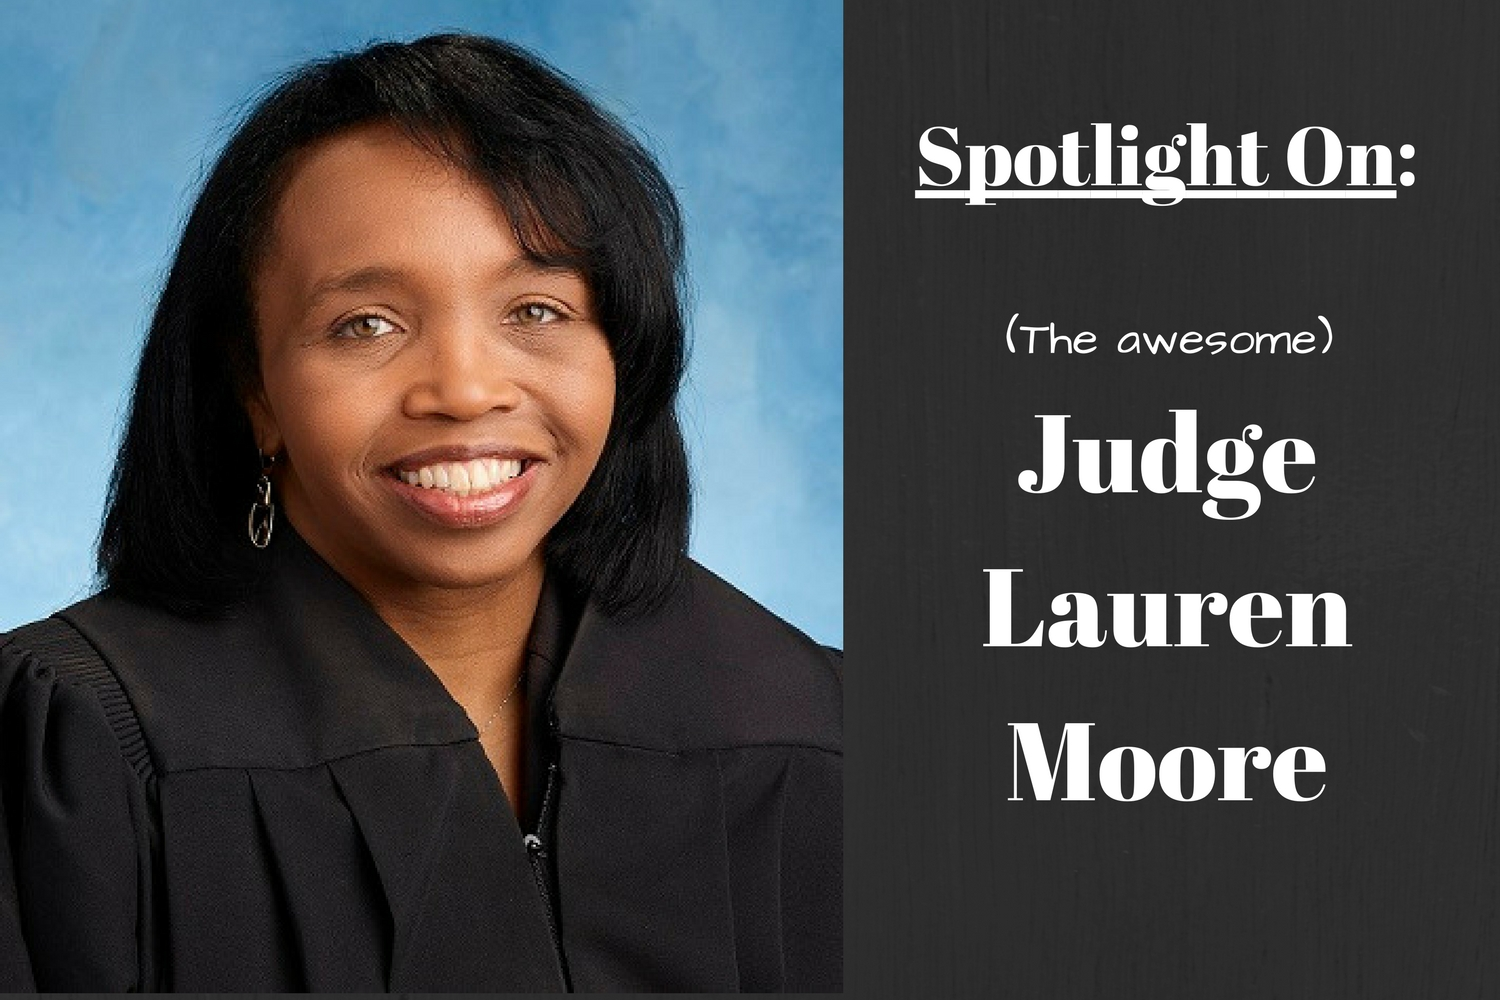 Spotlight On: Judge Lauren Moore